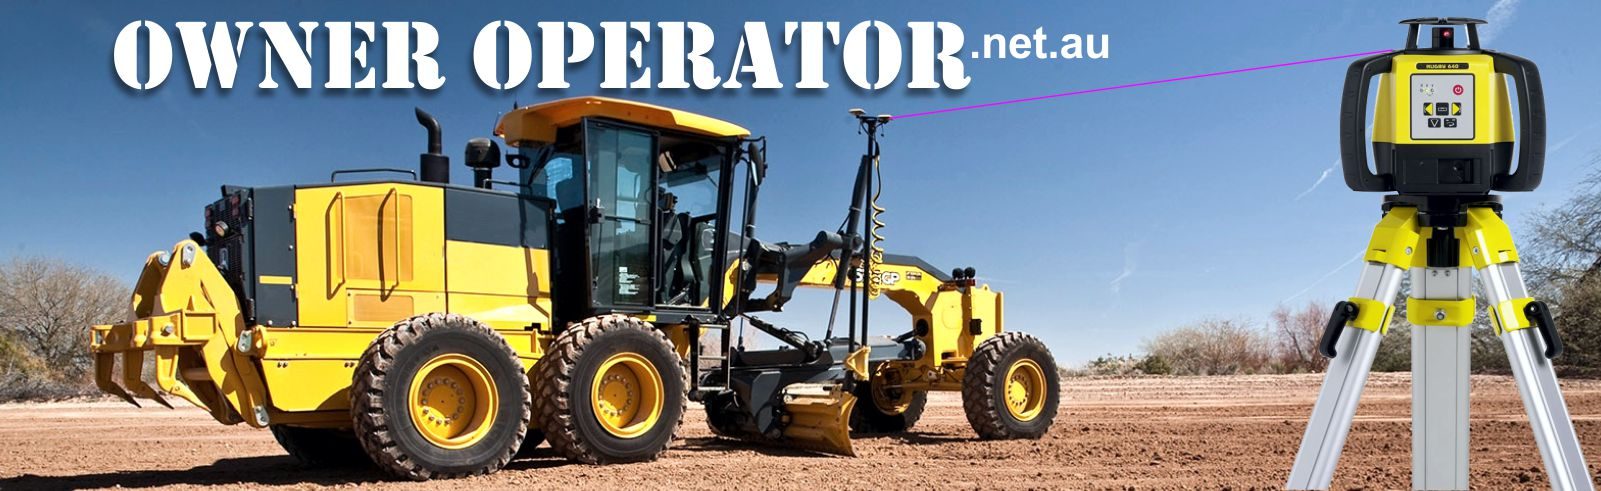 Owner Operators of Earthmoving Equipment